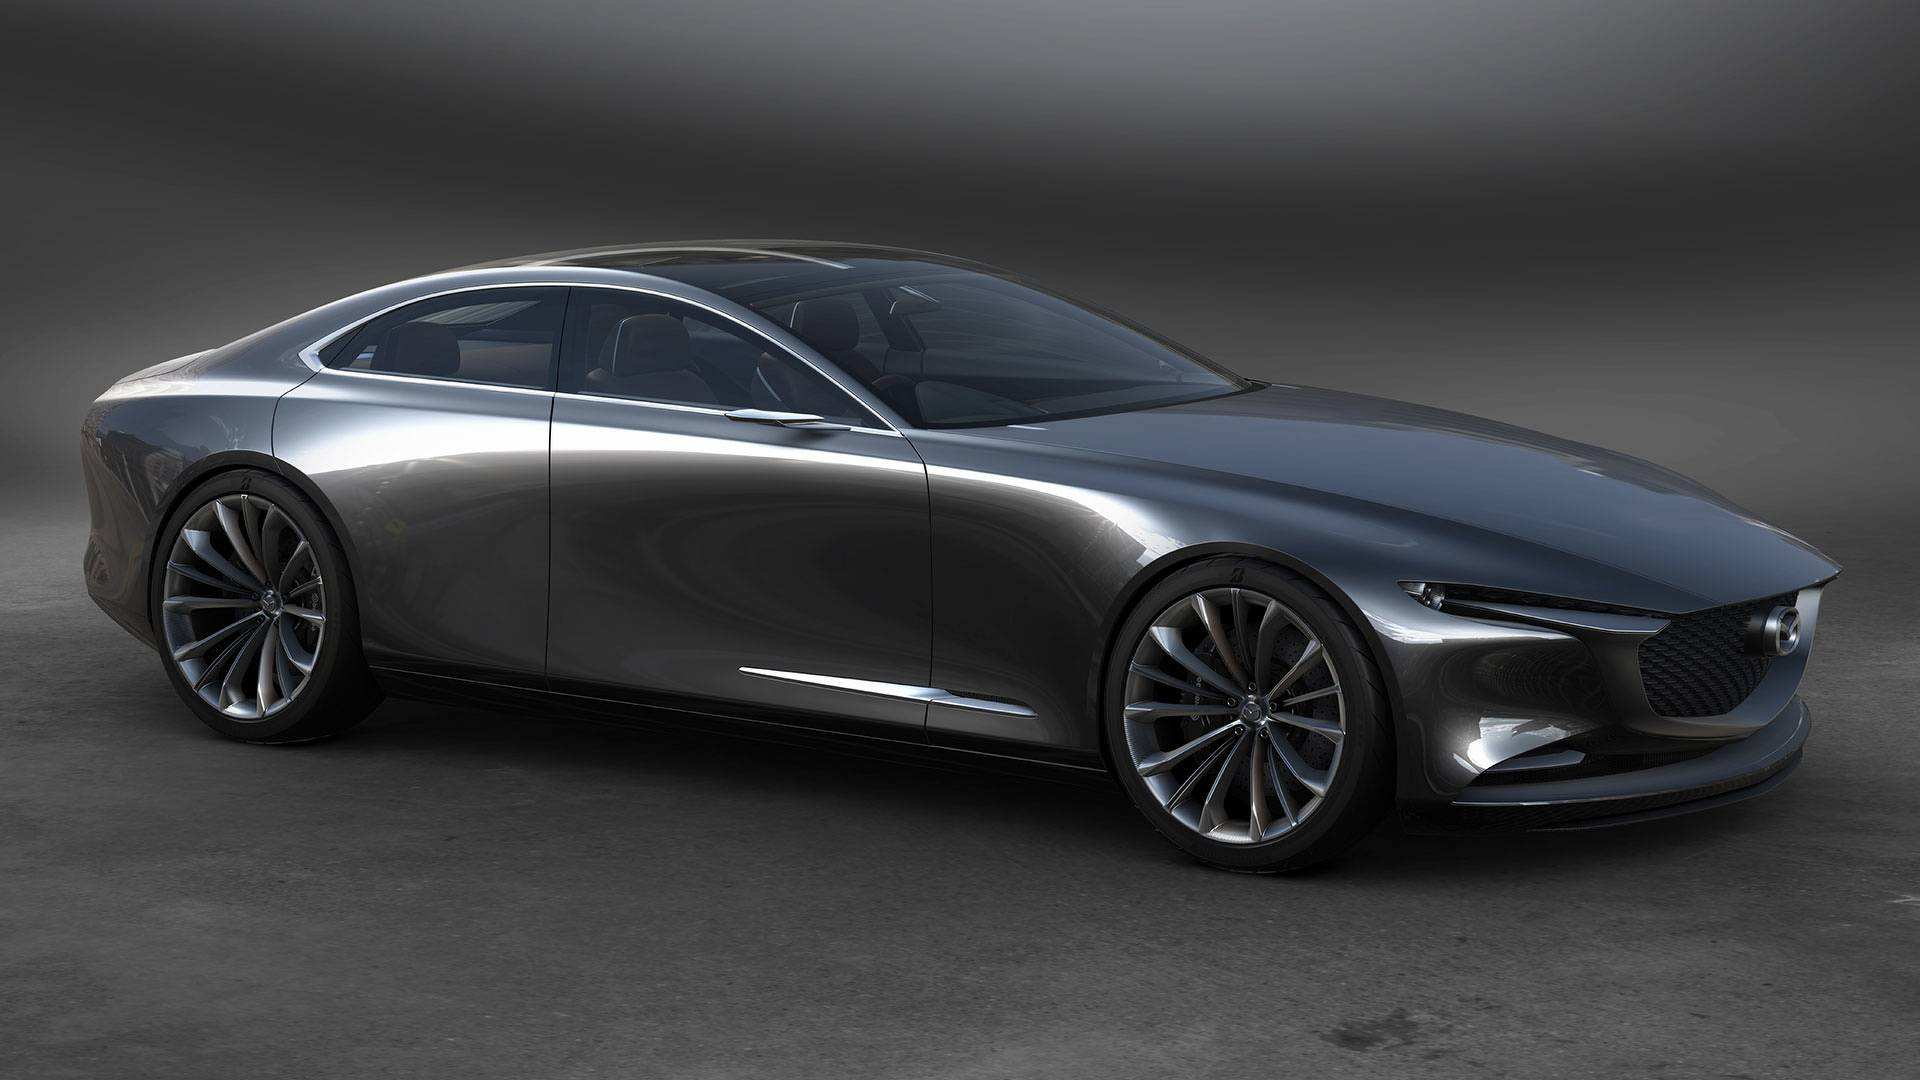 94 Great The 2019 Mazda Vision Coupe Price Concept Engine for The 2019 Mazda Vision Coupe Price Concept